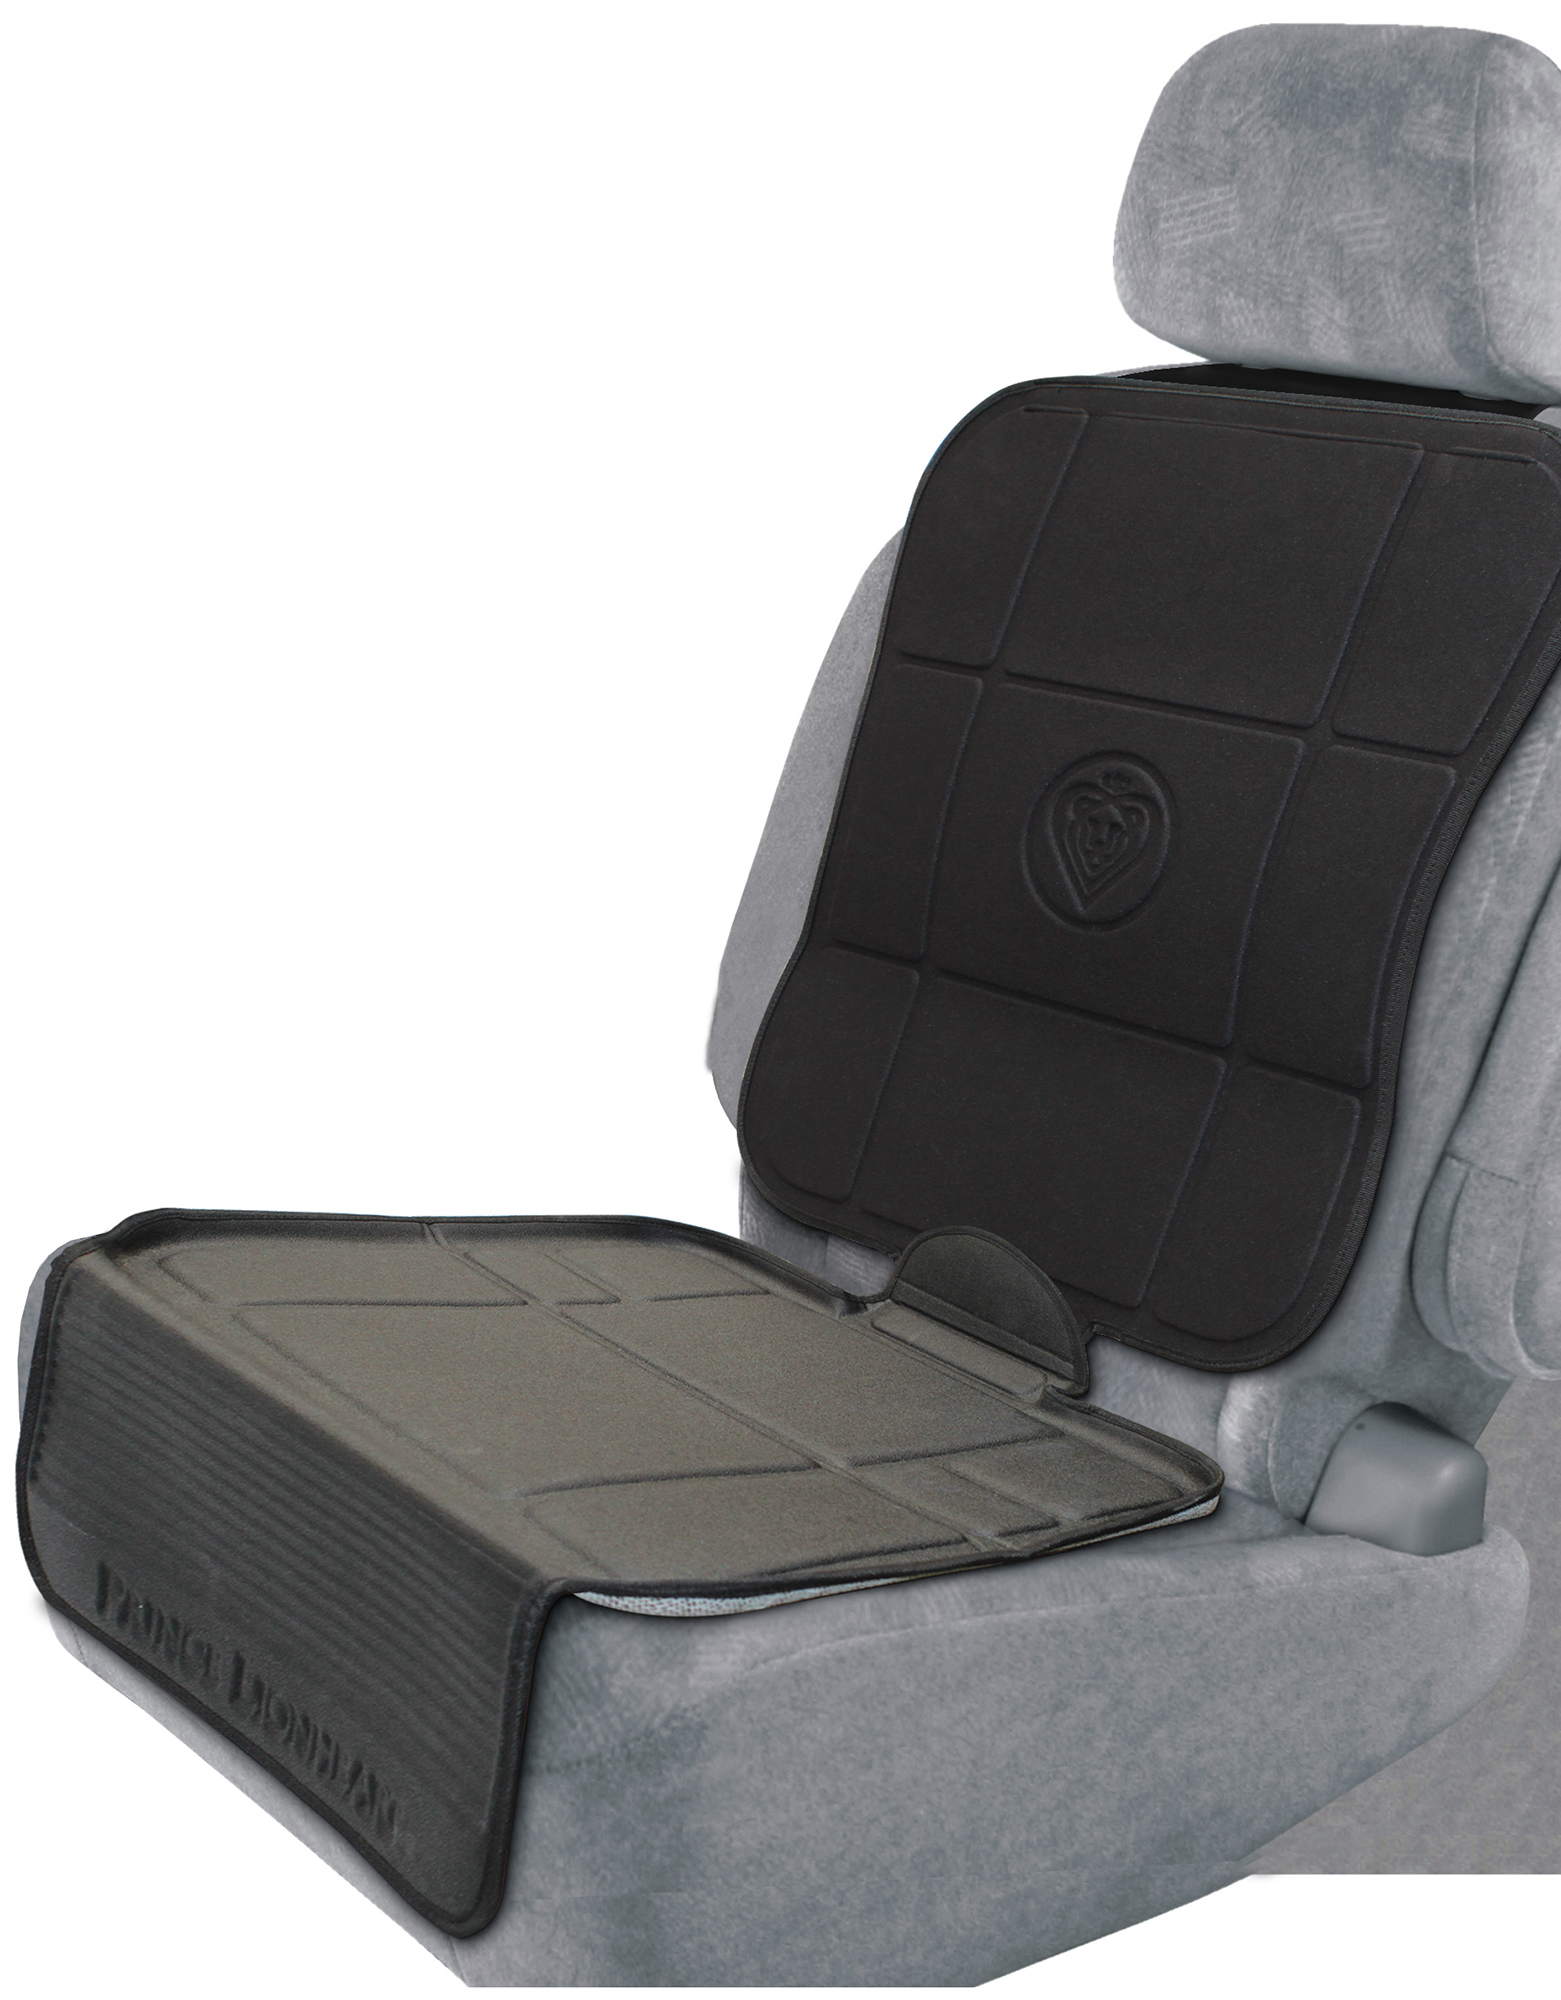 prince lionheart 2 stage seat saver isofix compatible car seat accessory bn ebay. Black Bedroom Furniture Sets. Home Design Ideas